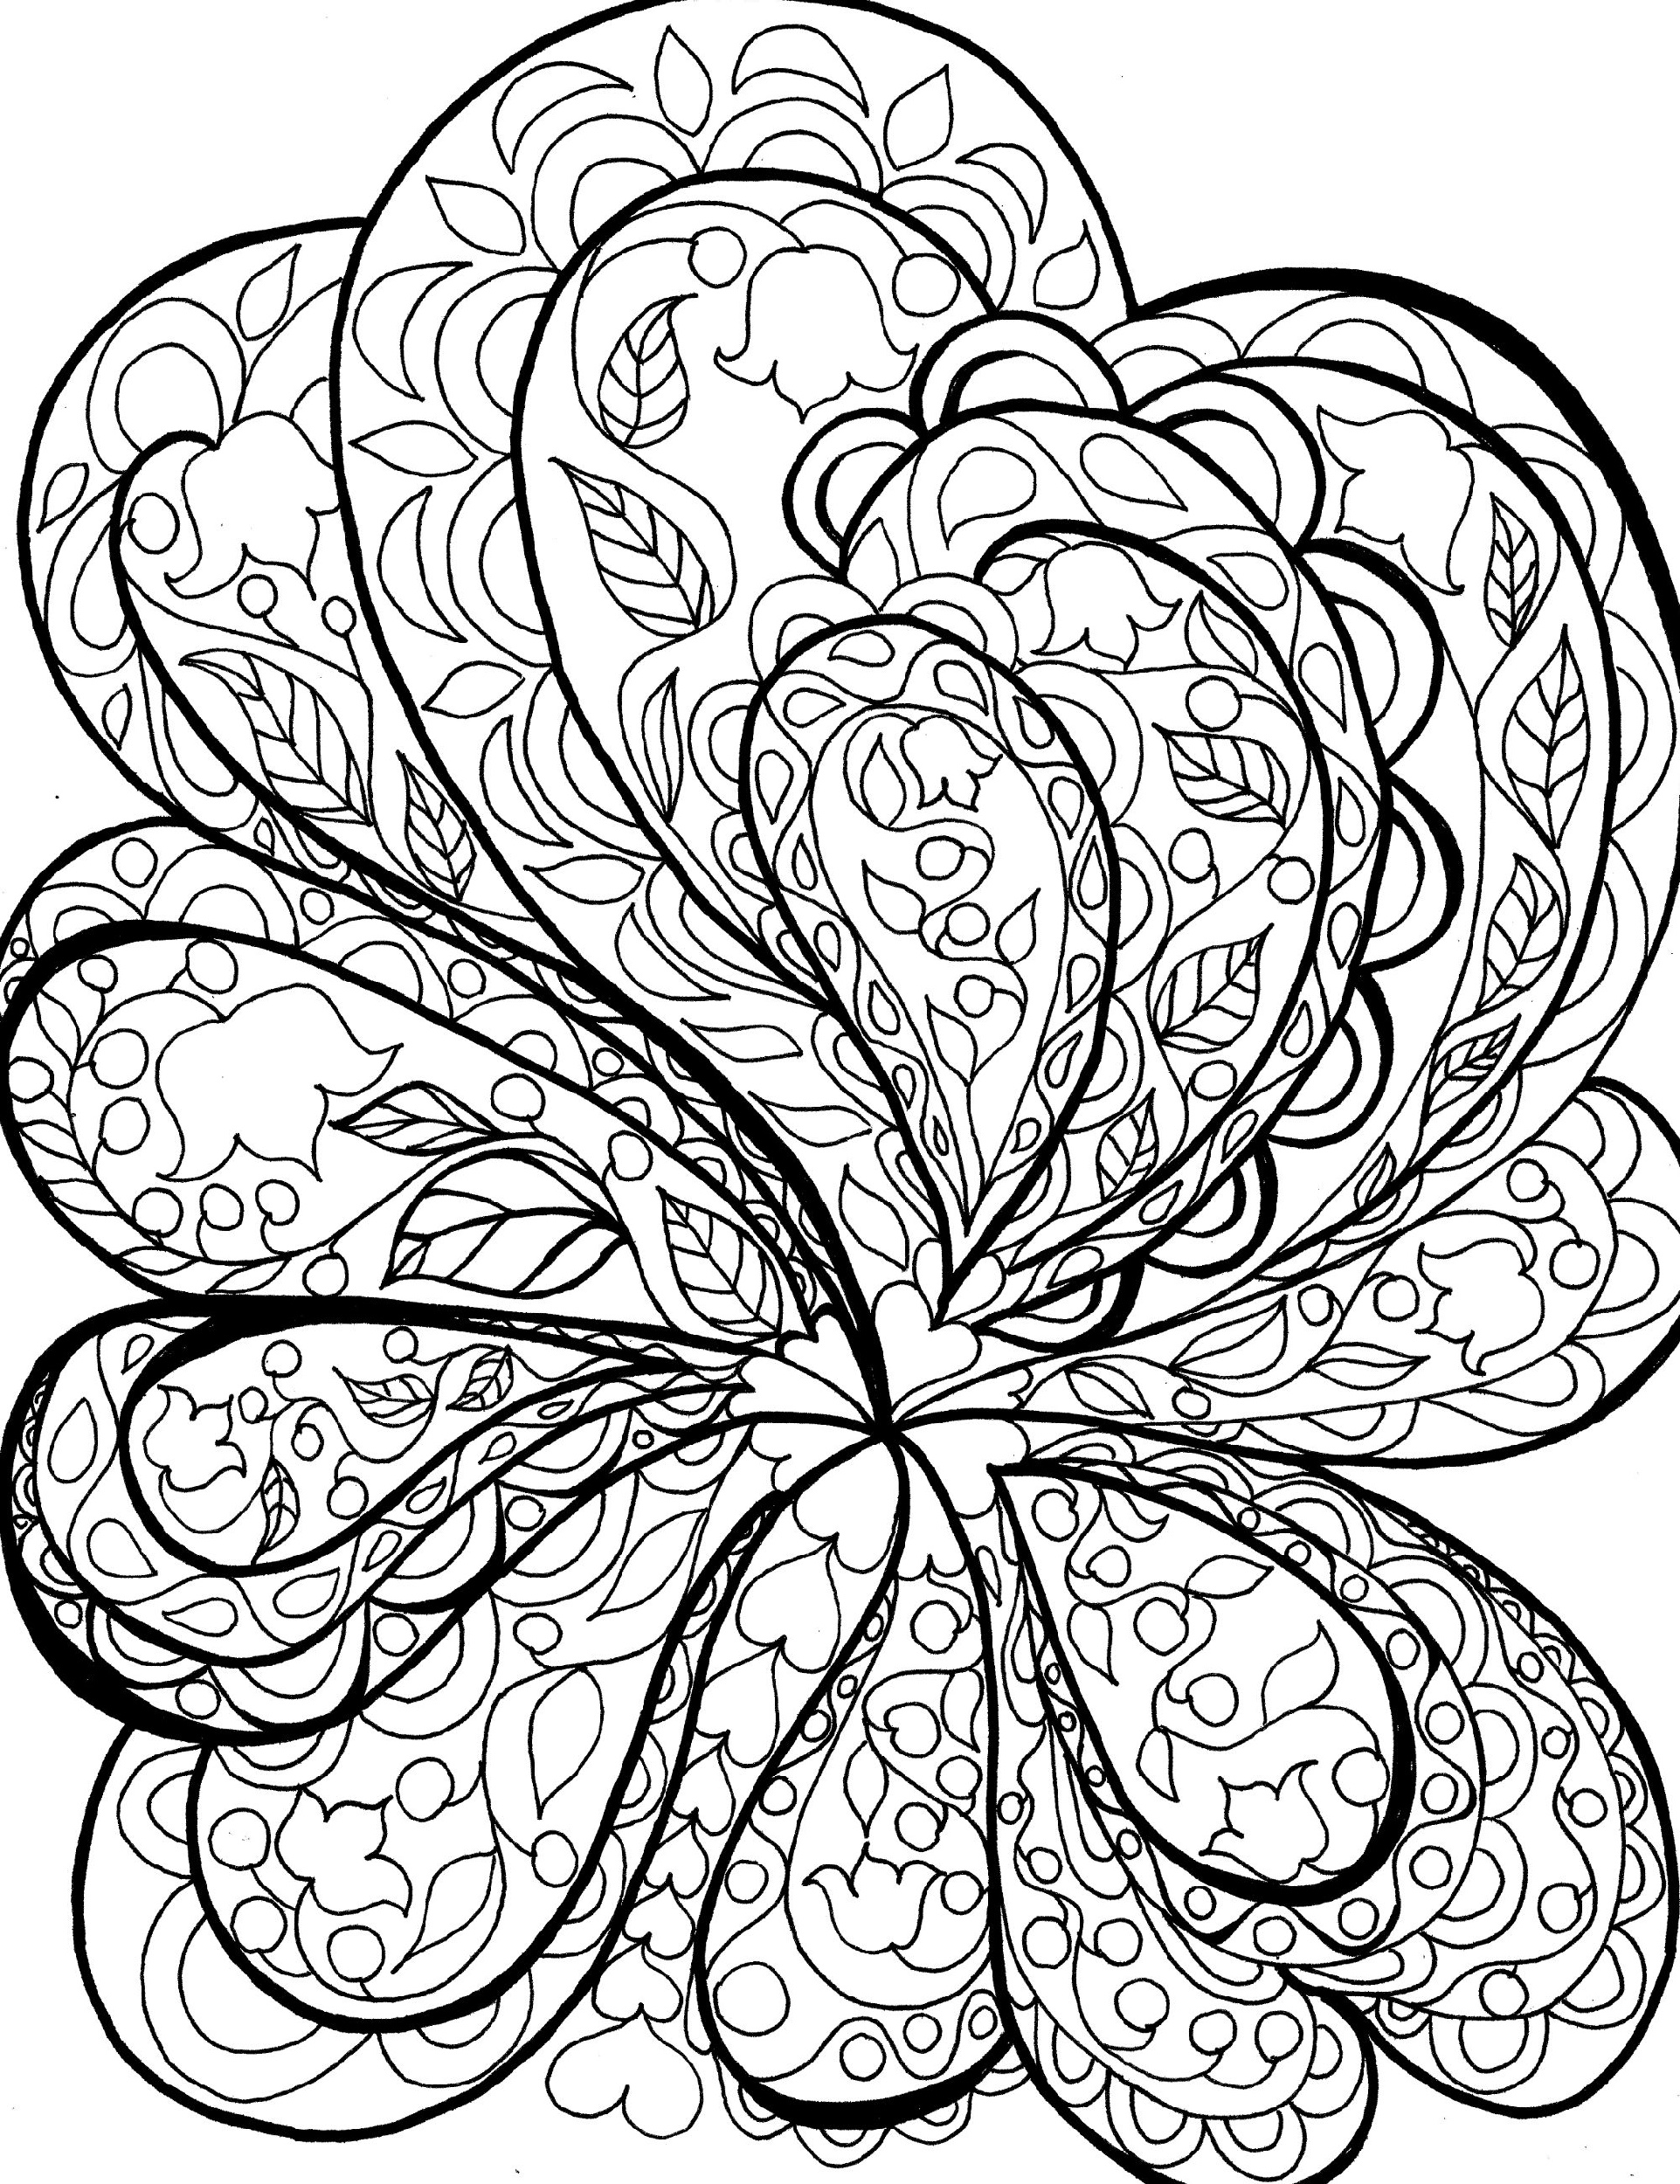 Printable Coloring Pages For Adults Abstract